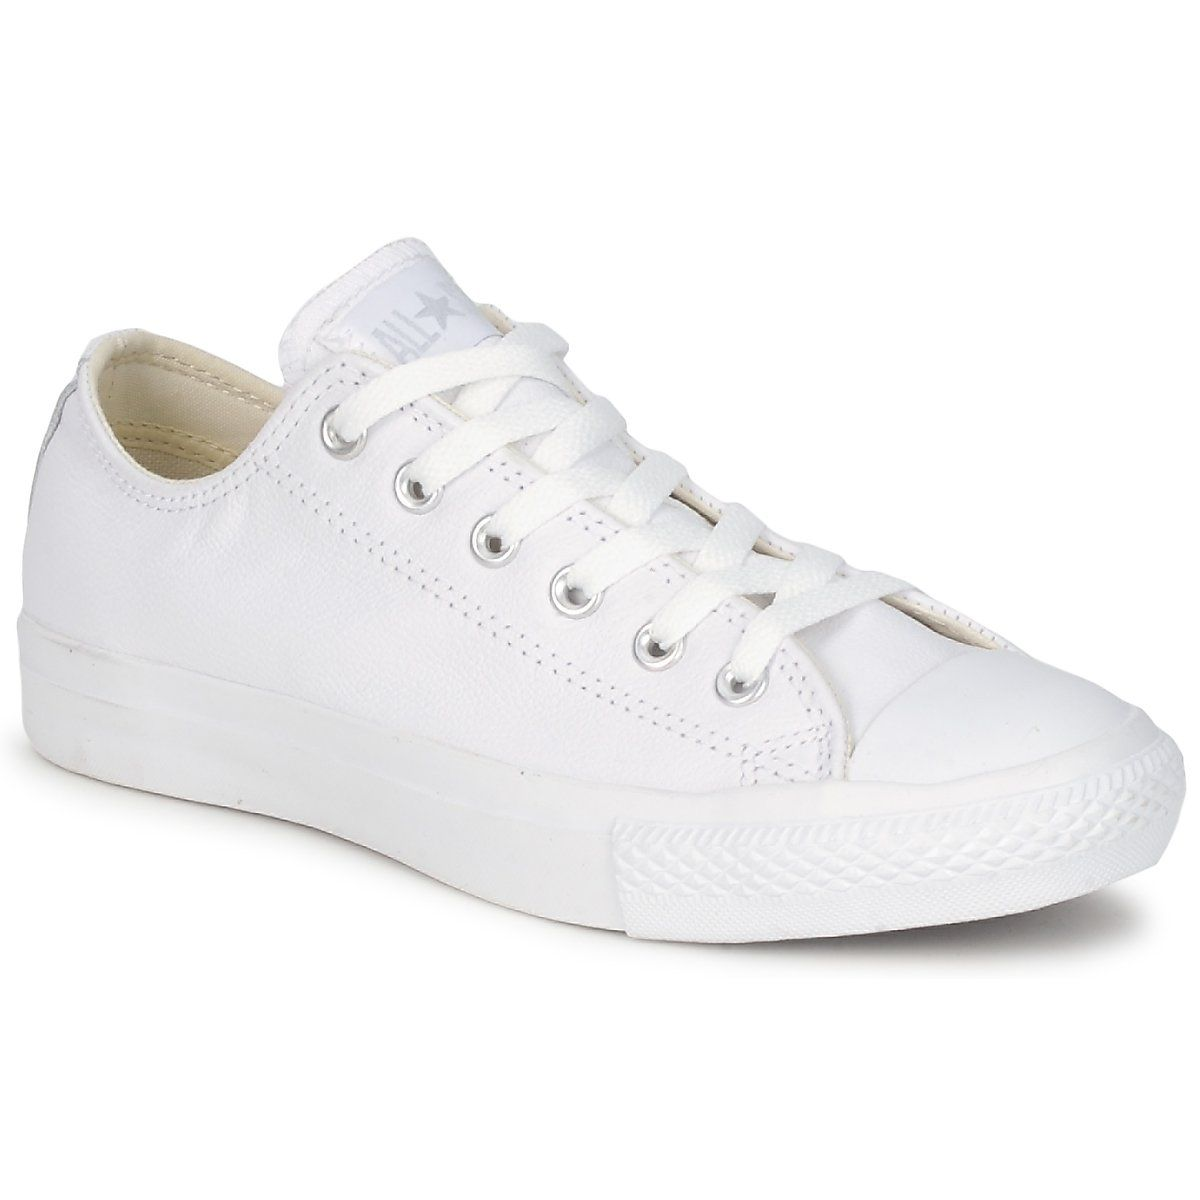 94768071963 Converse ALL STAR MONOCHROME CUIR OX Weiss